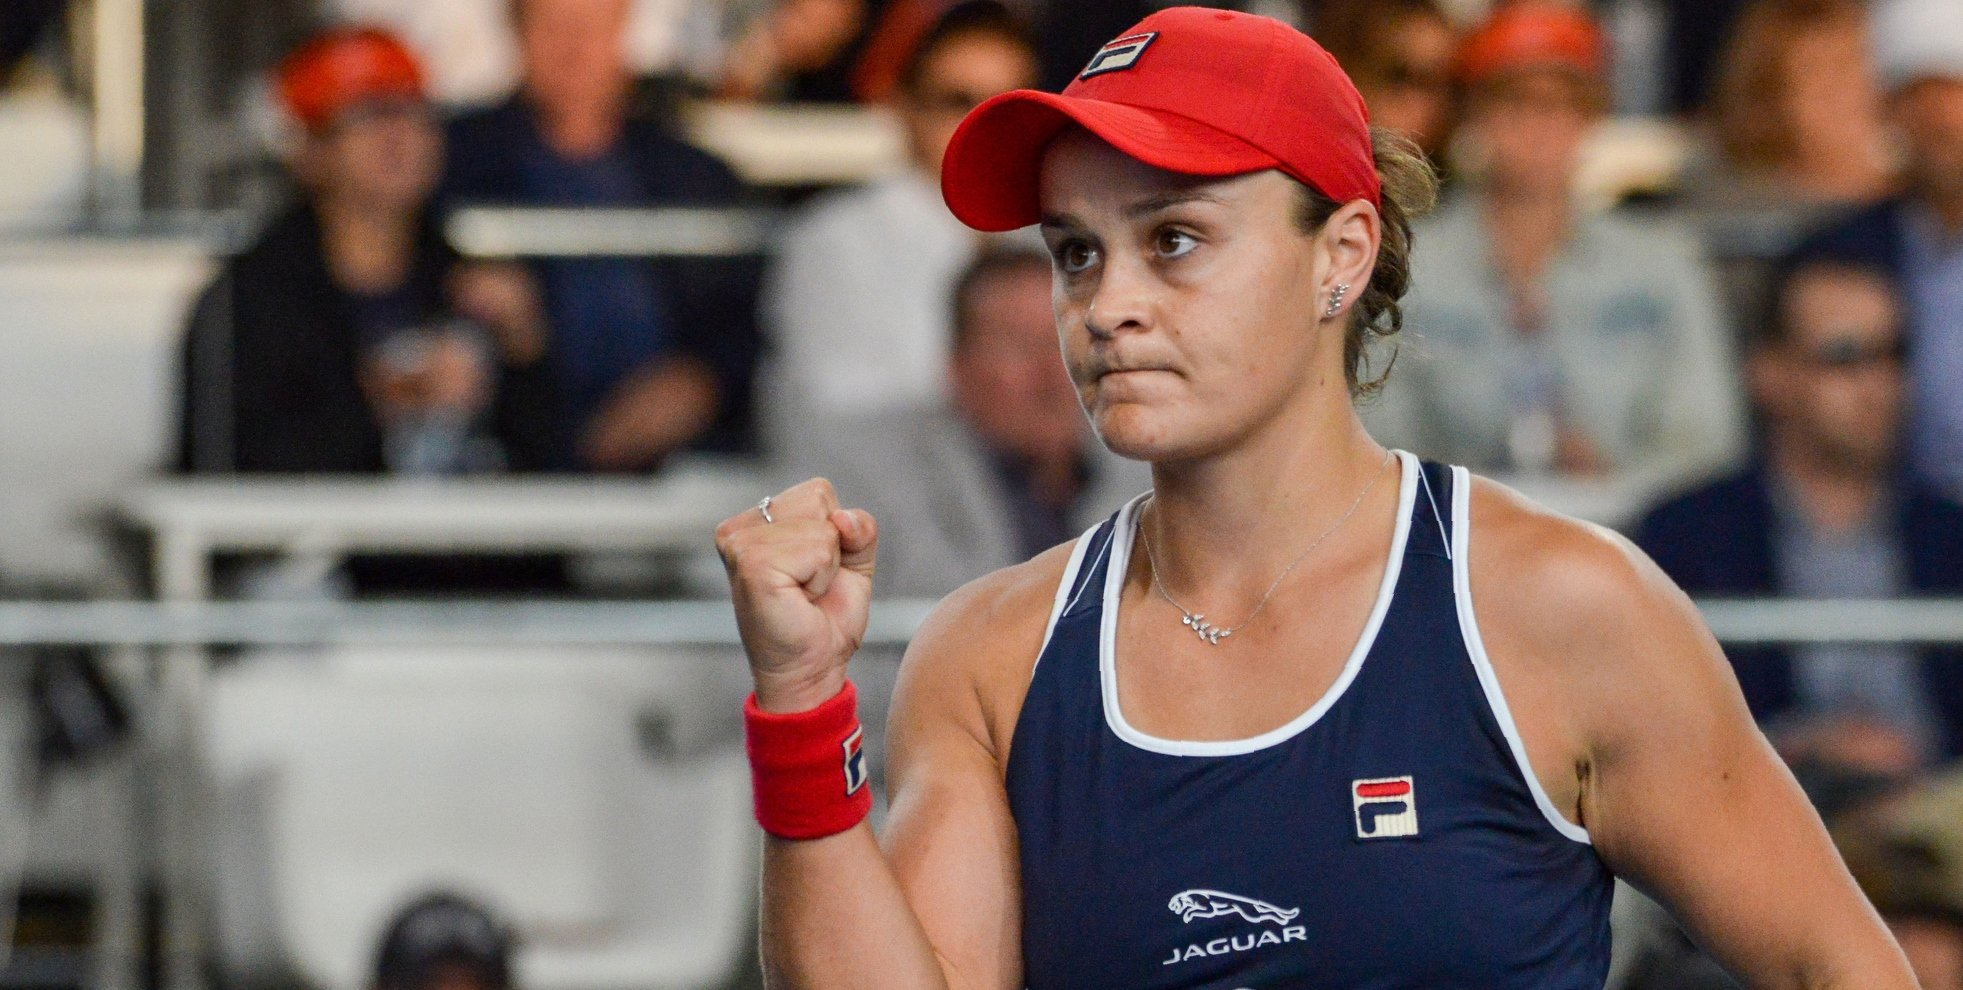 World No 1 Ashleigh Barty fights back from a set down to beat America's Danielle Collins and book place in Adelaide International final